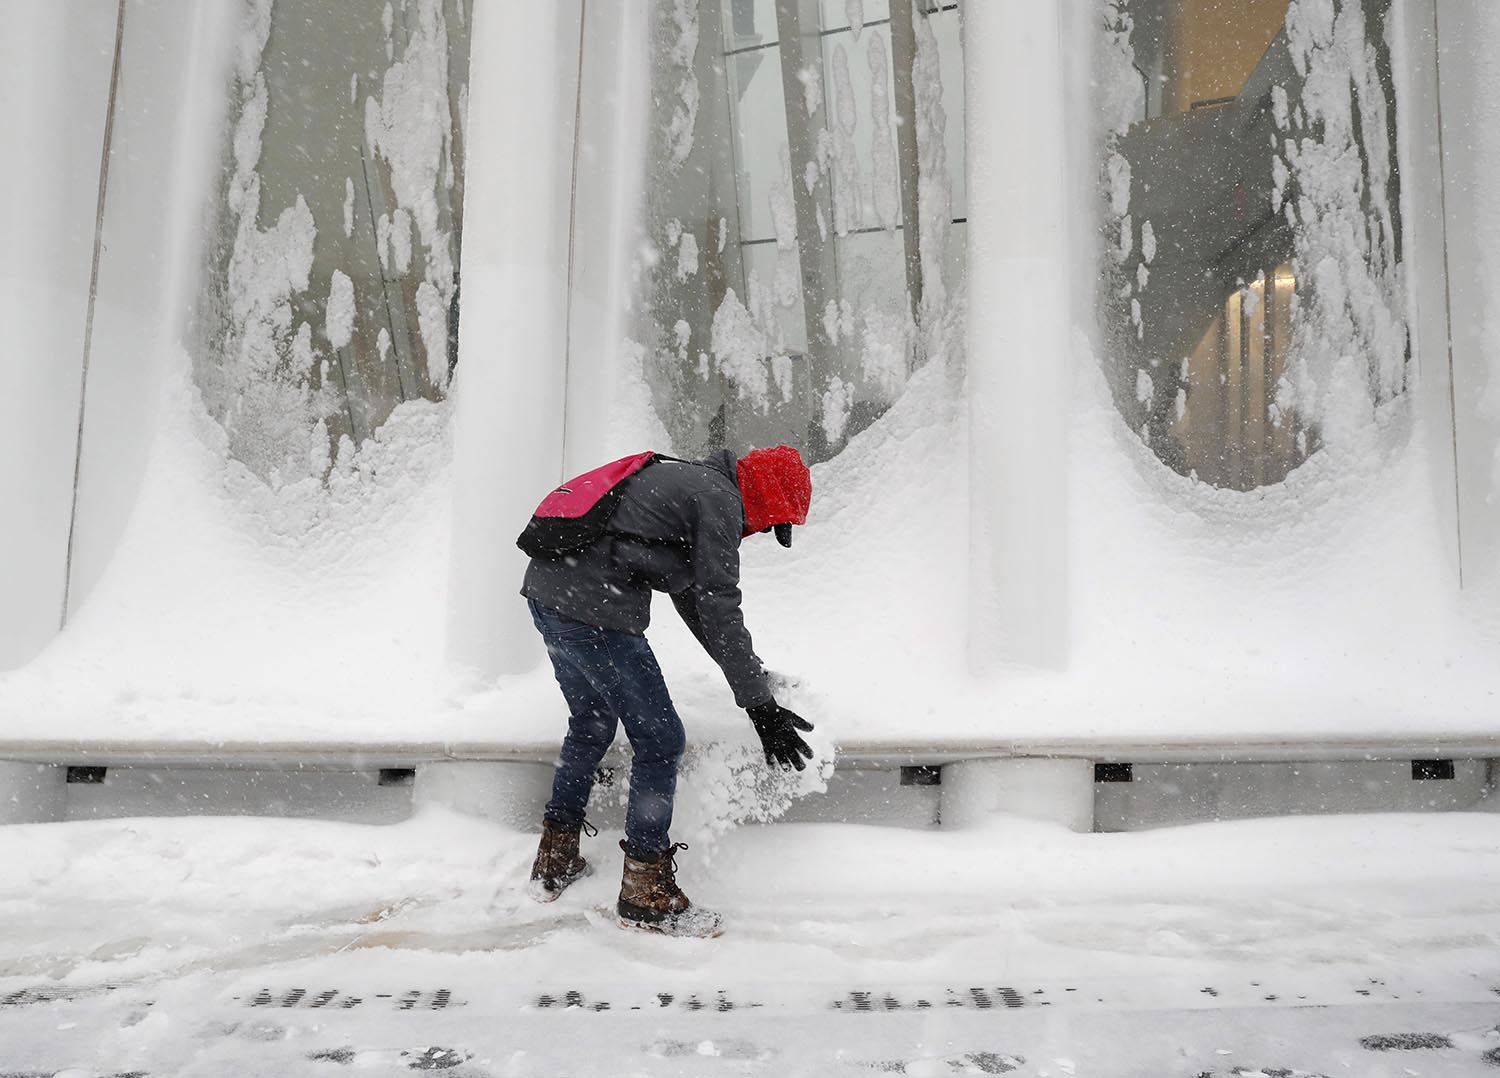 "<div class=""meta image-caption""><div class=""origin-logo origin-image ap""><span>AP</span></div><span class=""caption-text"">A passerby stops to play with drifting snow that accumulated in the windows outside the Oculus at the World Trade Center's transportation hub in Lower Manhattan, Jan. 4, 2018. (AP Photo/Kathy Willens)</span></div>"